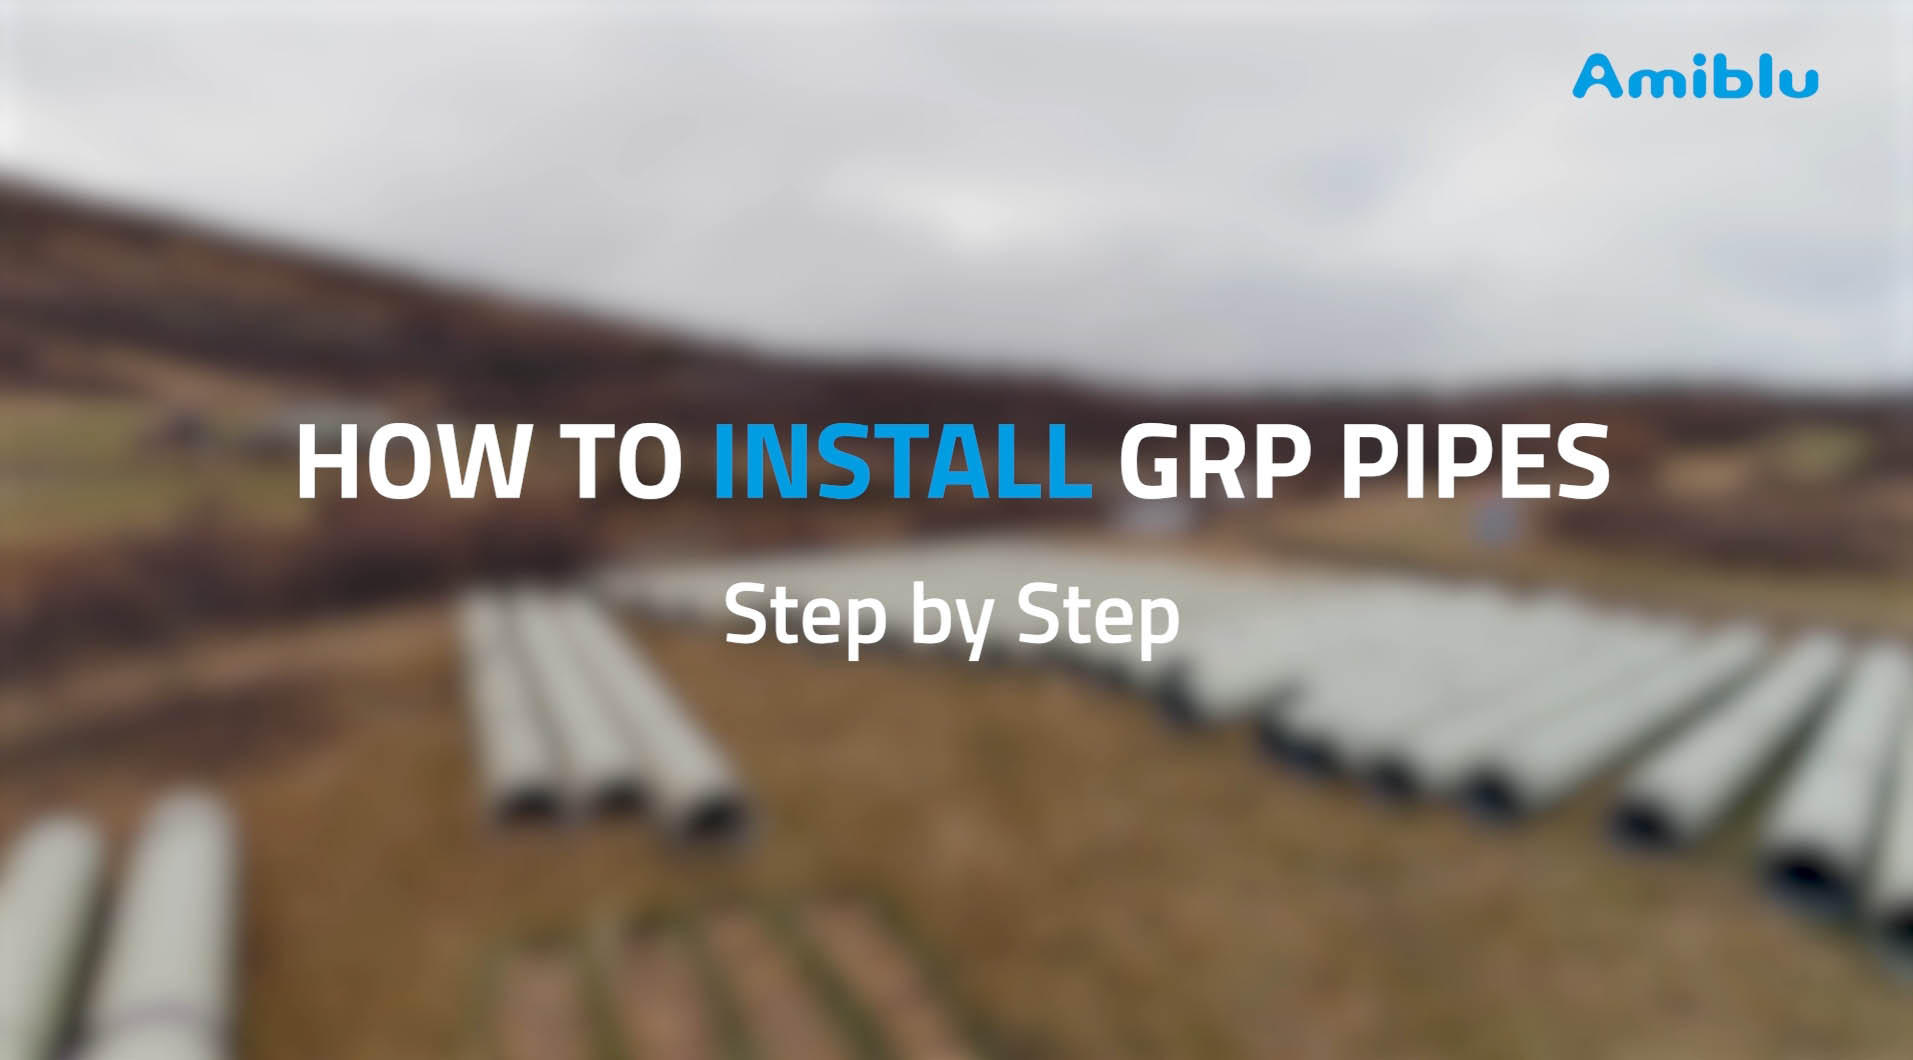 How to install GRP pipes step by step